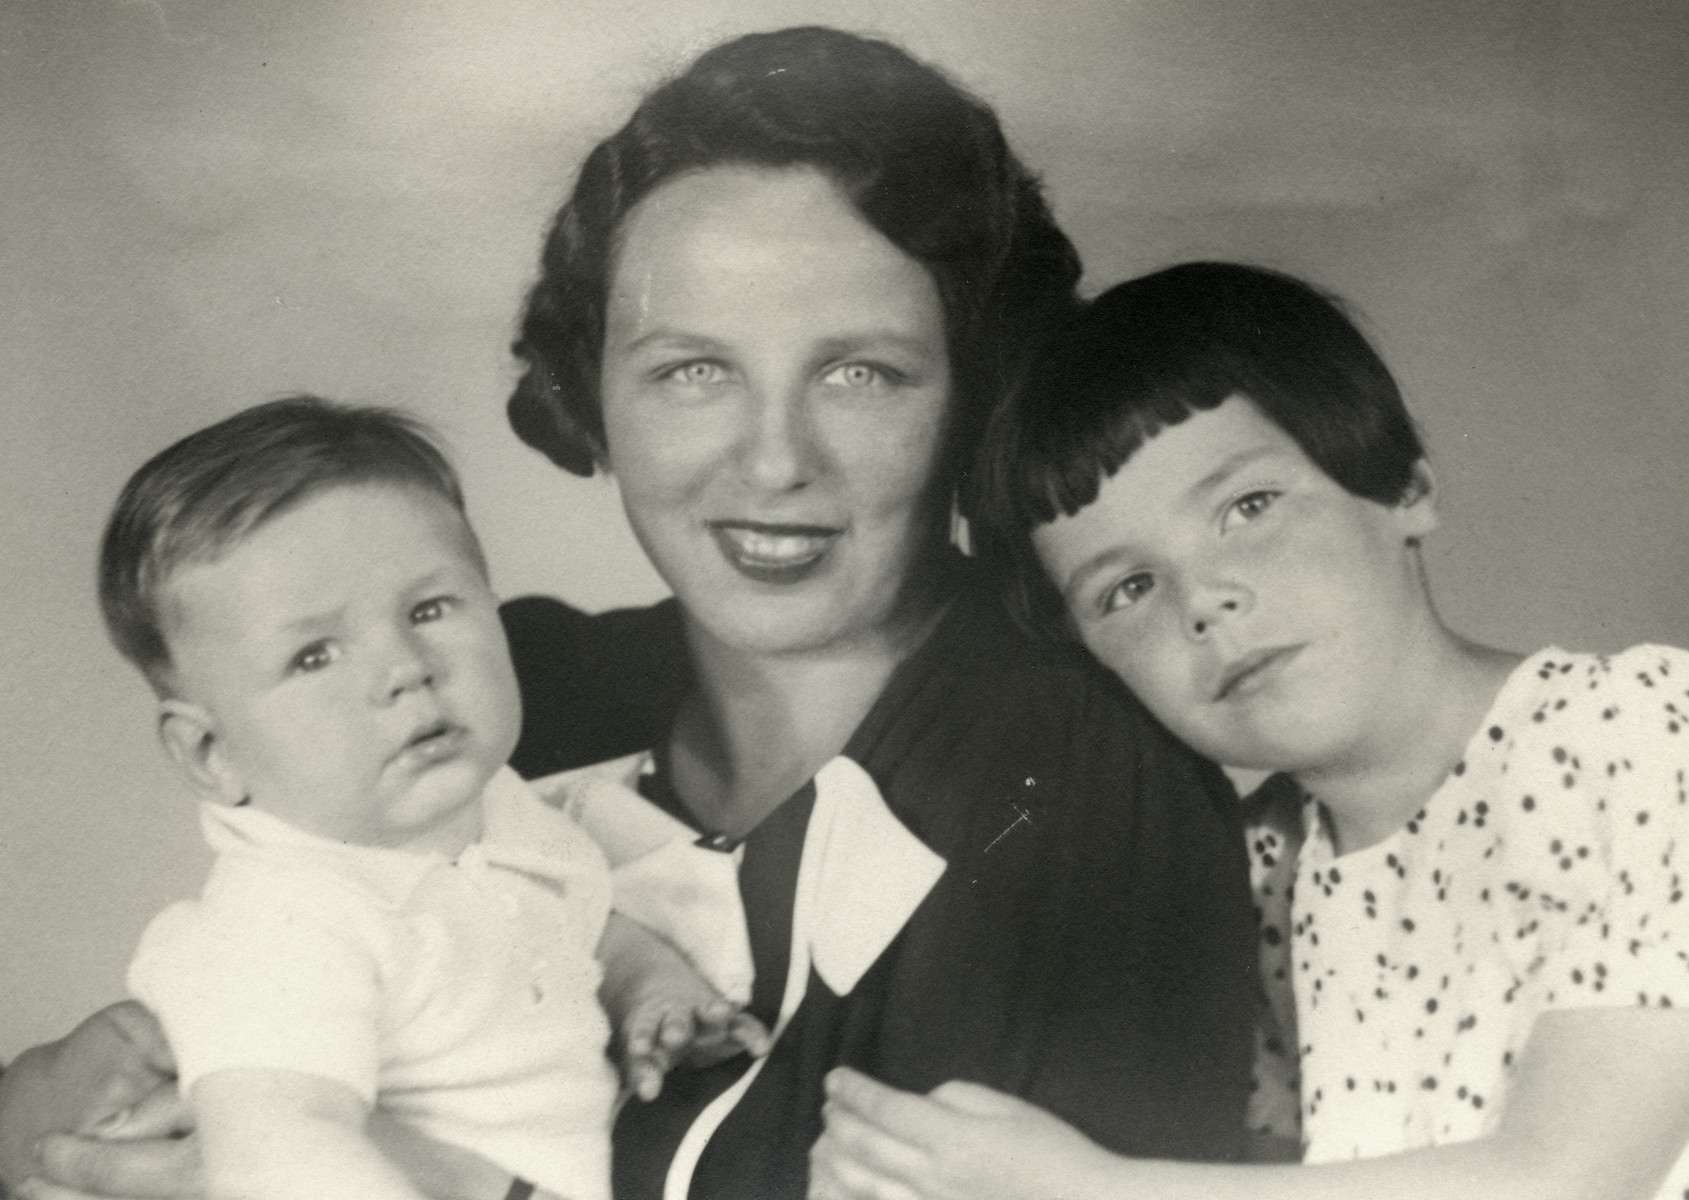 Portrait of a Jewish mother and her children.  Pictured is Josephine Kunstenaar (born Hornman), who married Marion's father's brother, Simon Kunstenaar.  With her are her son Jacky and daughter Mary.  All three perished.